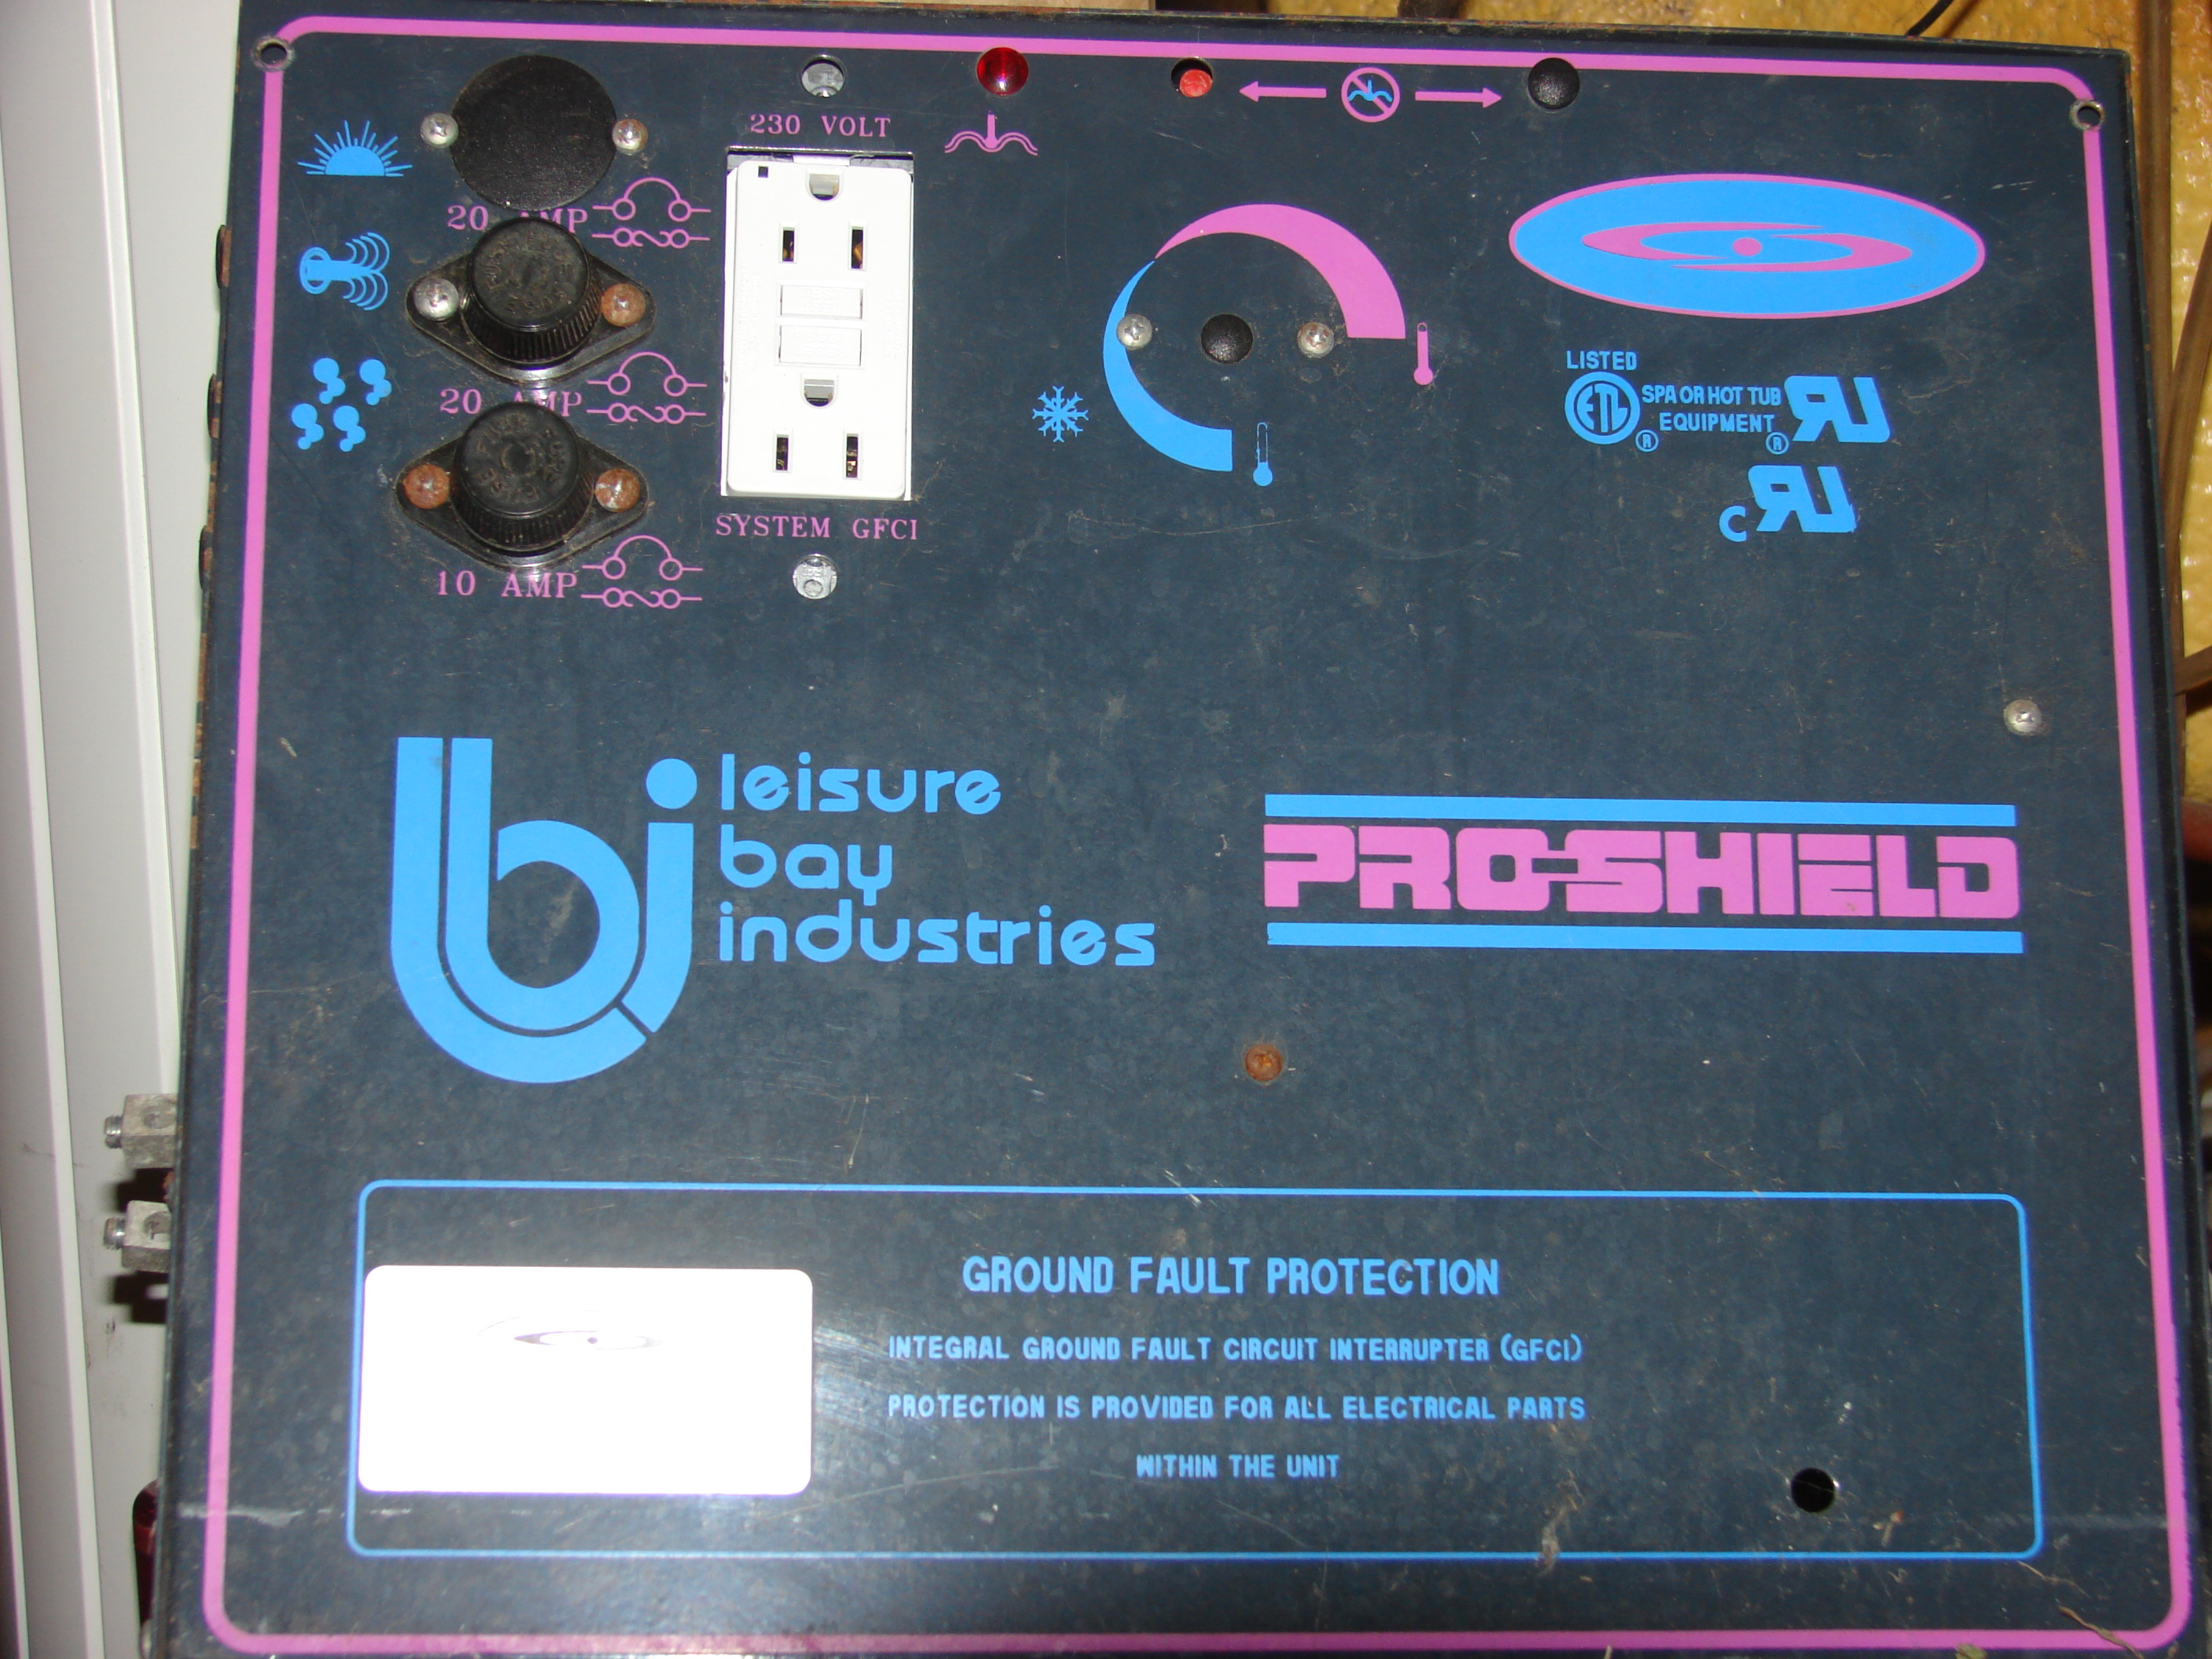 I have a Leisure Bay Pro Shield Hot tub model XXXXX